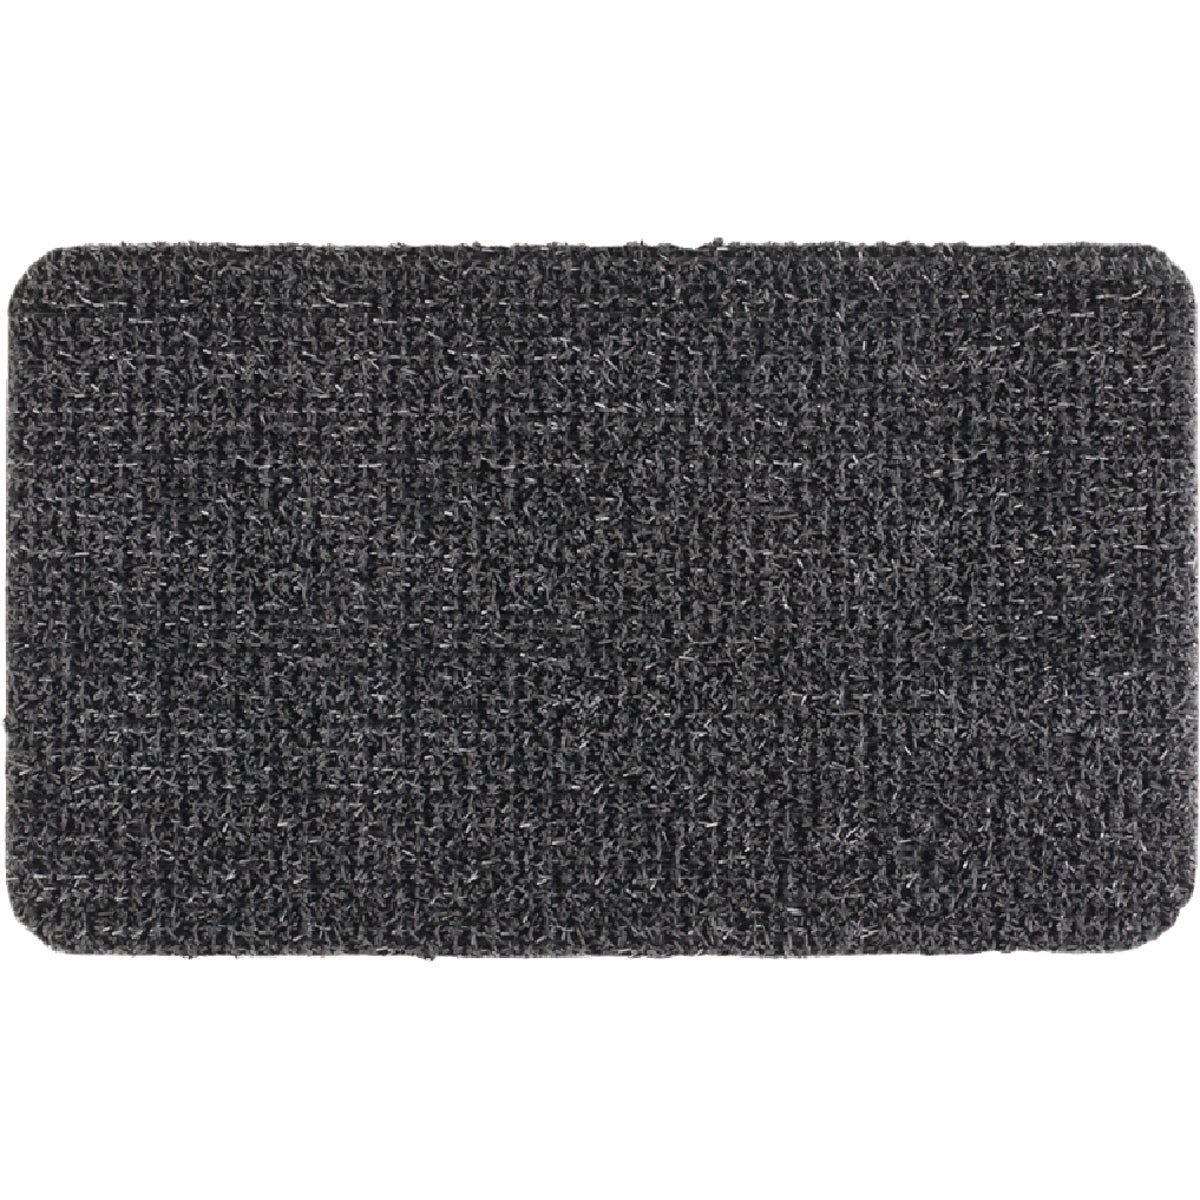 CINDER DOORMAT - 10254603 by Grassworx